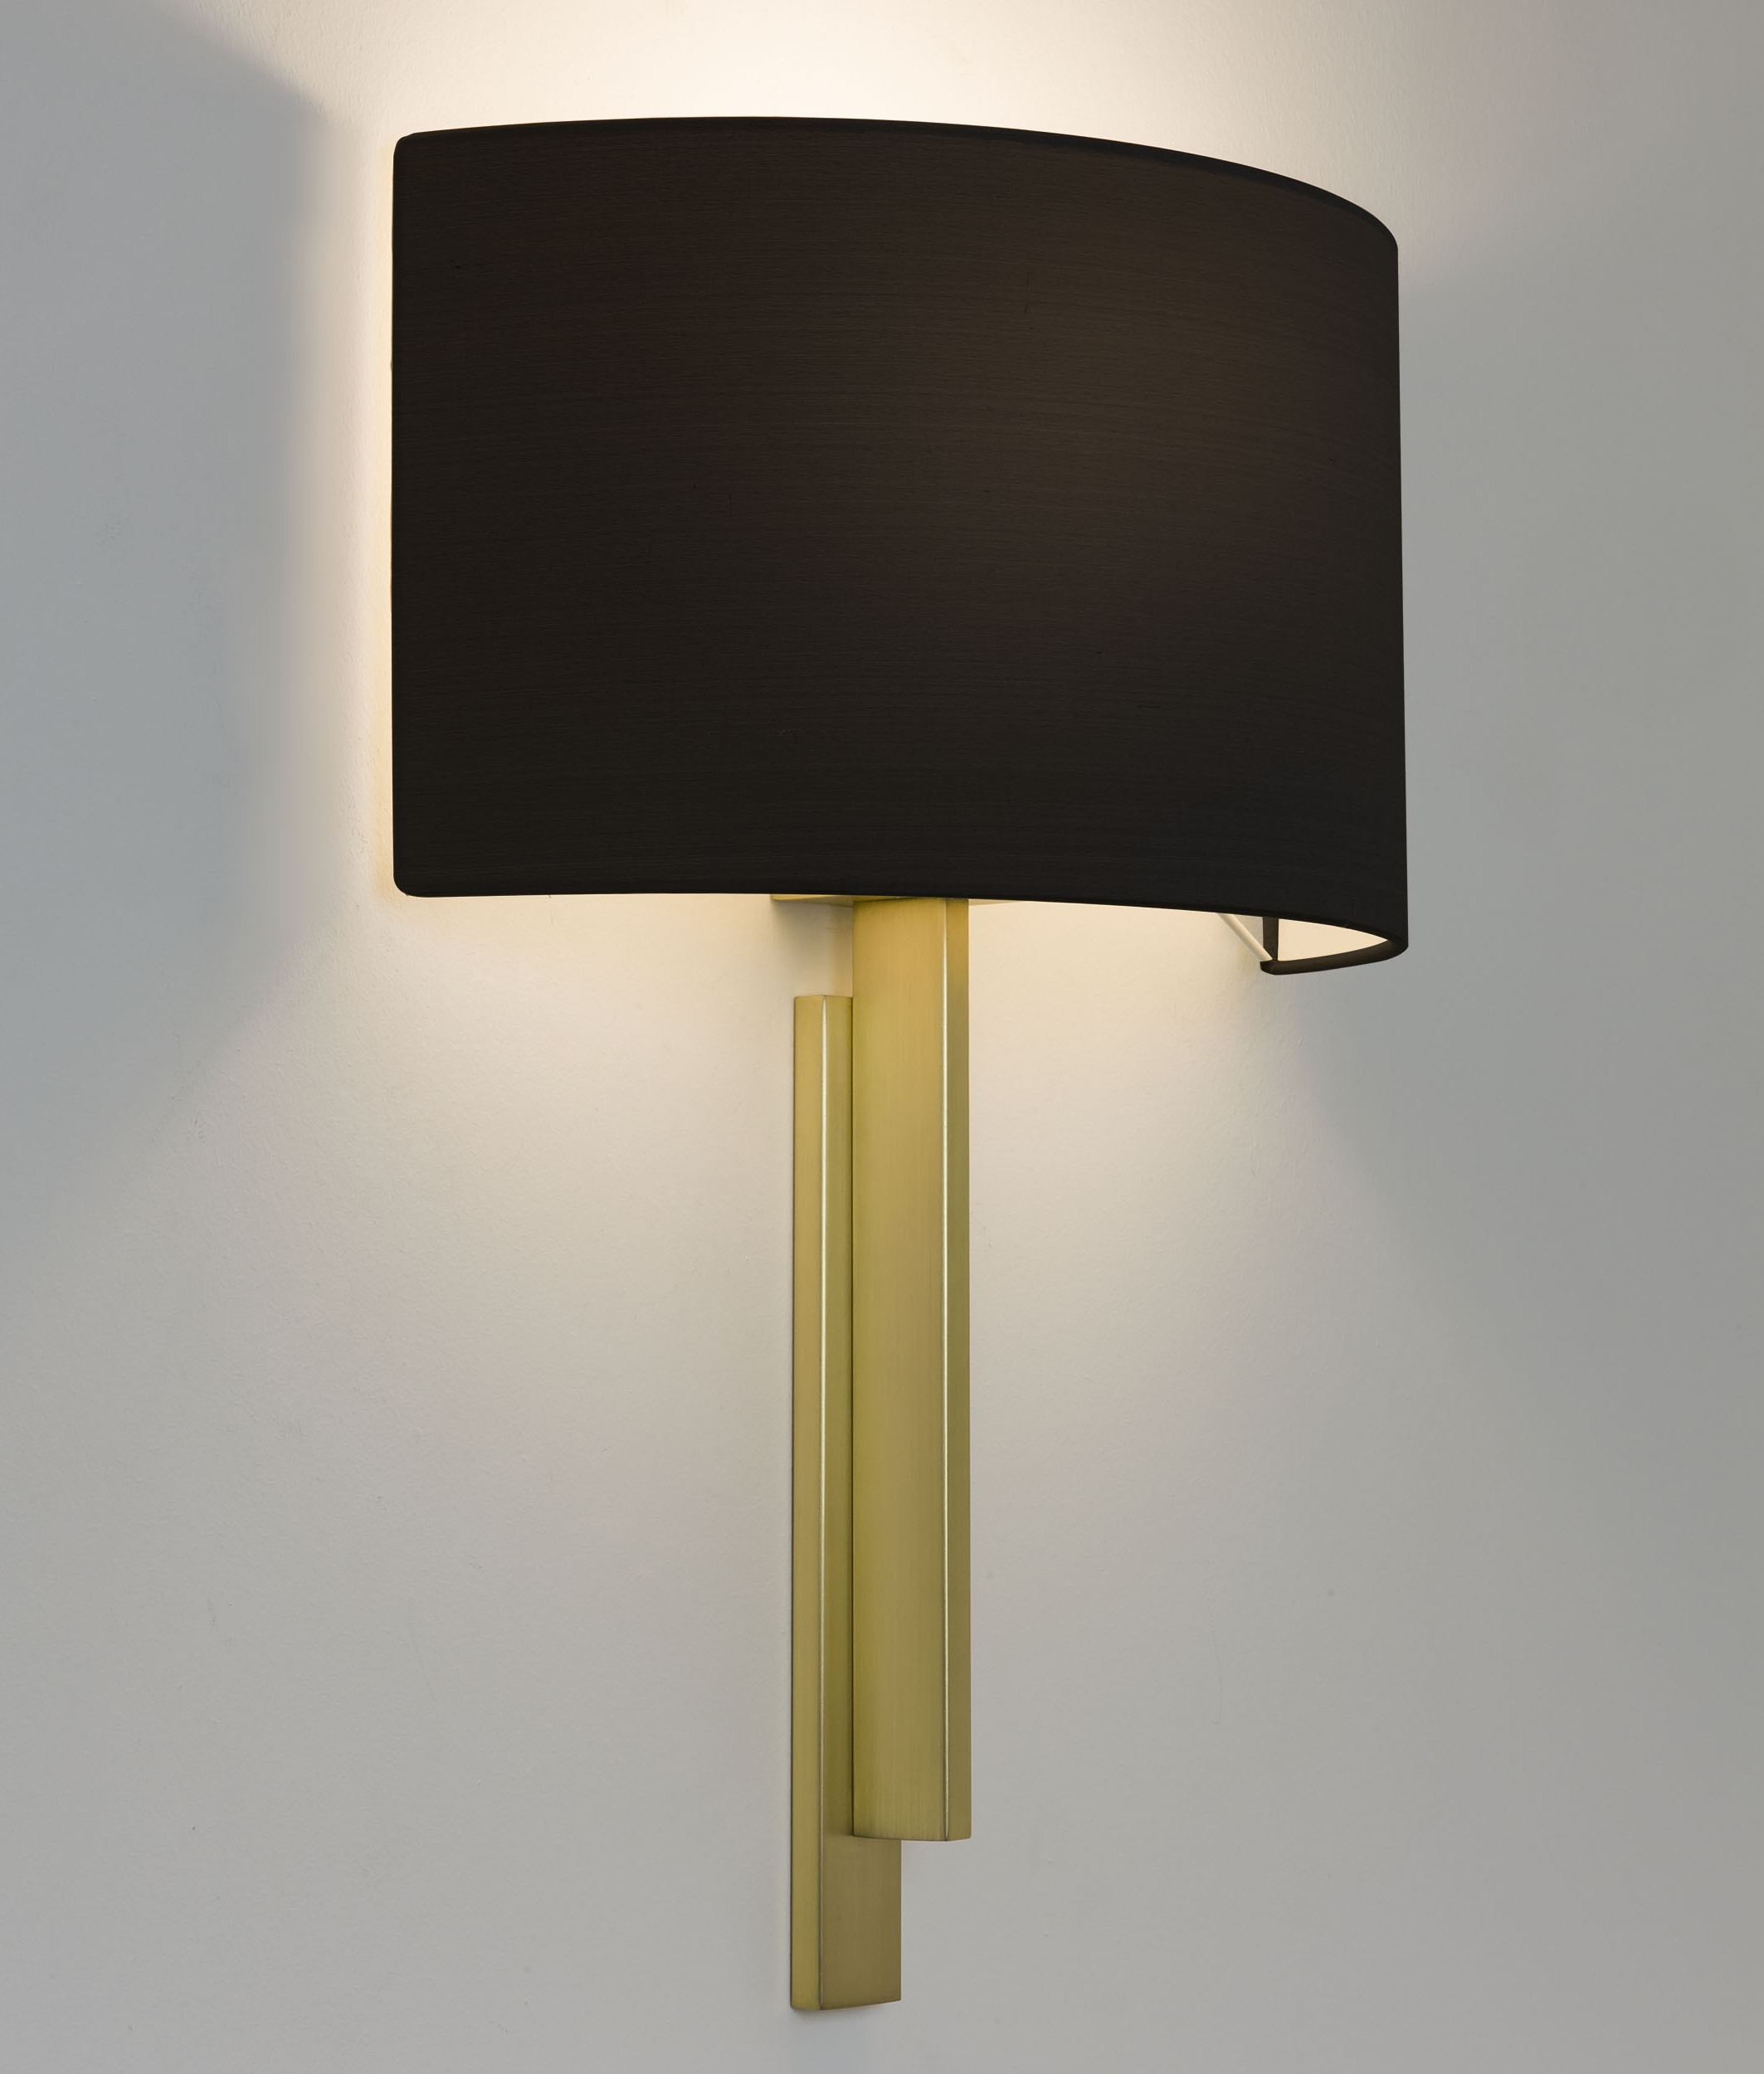 Slim And Shallow Profile Wall Light And Shade